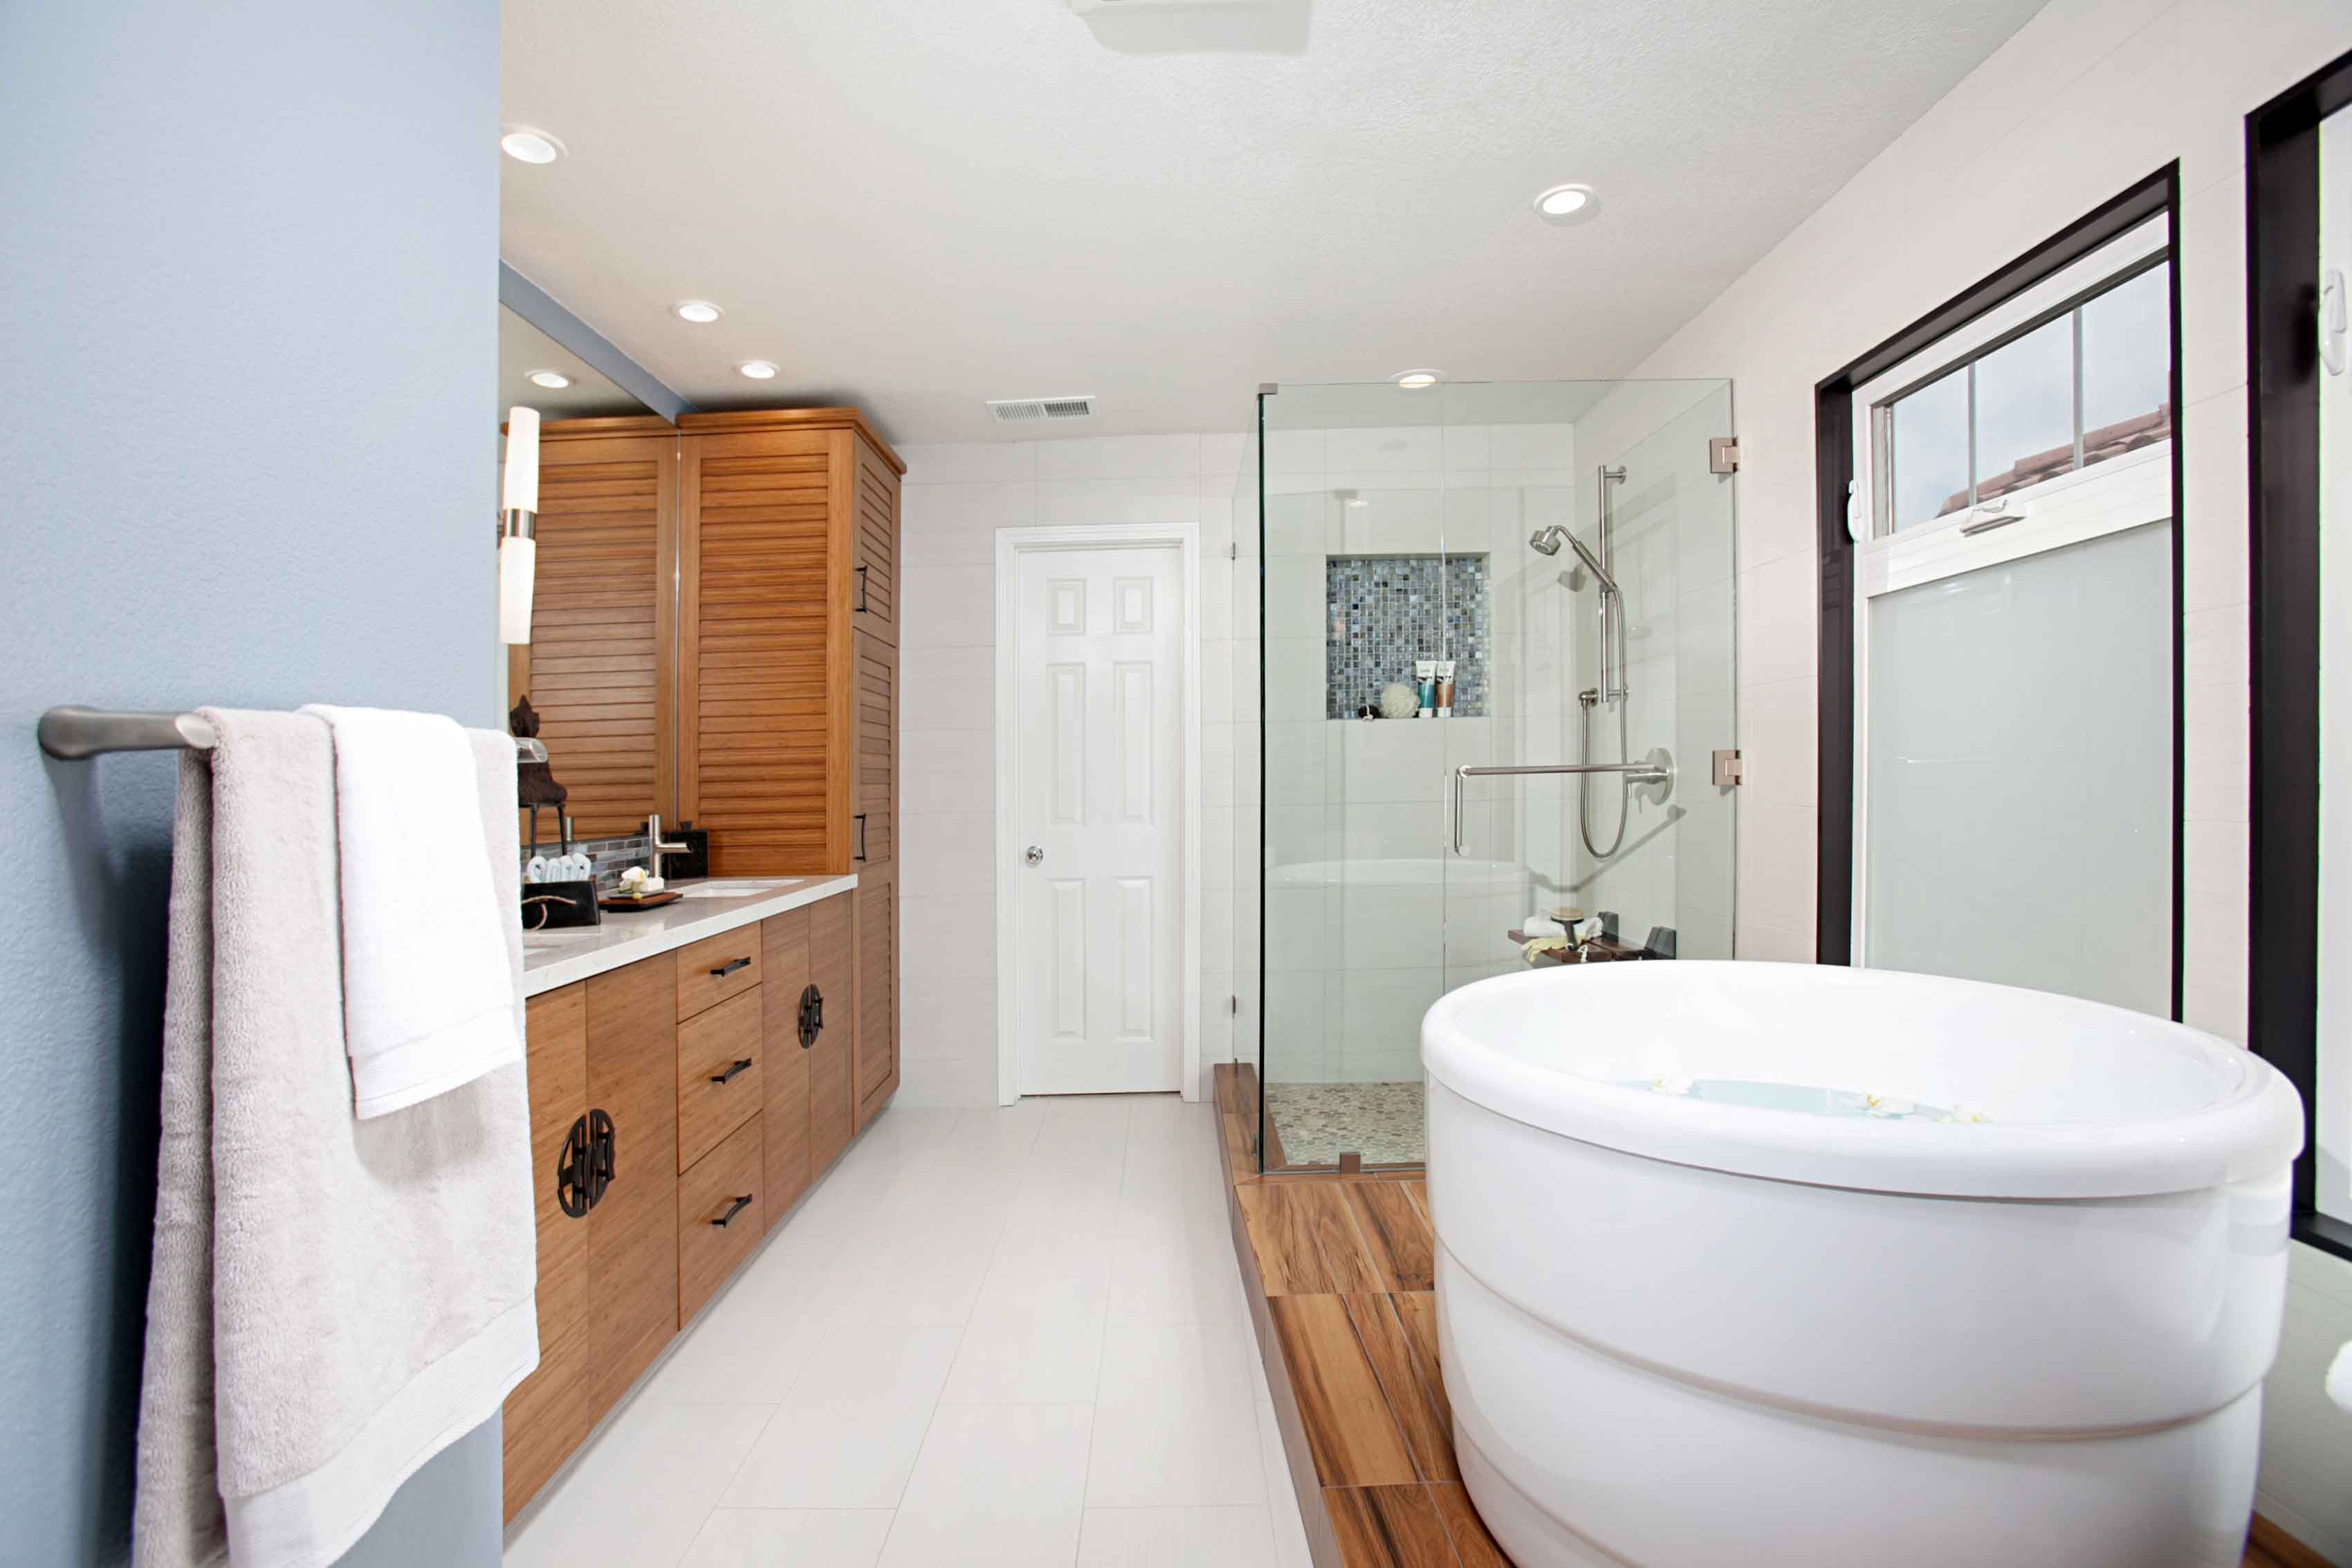 Asian Master Bathroom With White Bowl Bathtub Combo With Glass Enclosed Shower And Sleek Wood Details (Image 2 of 16)